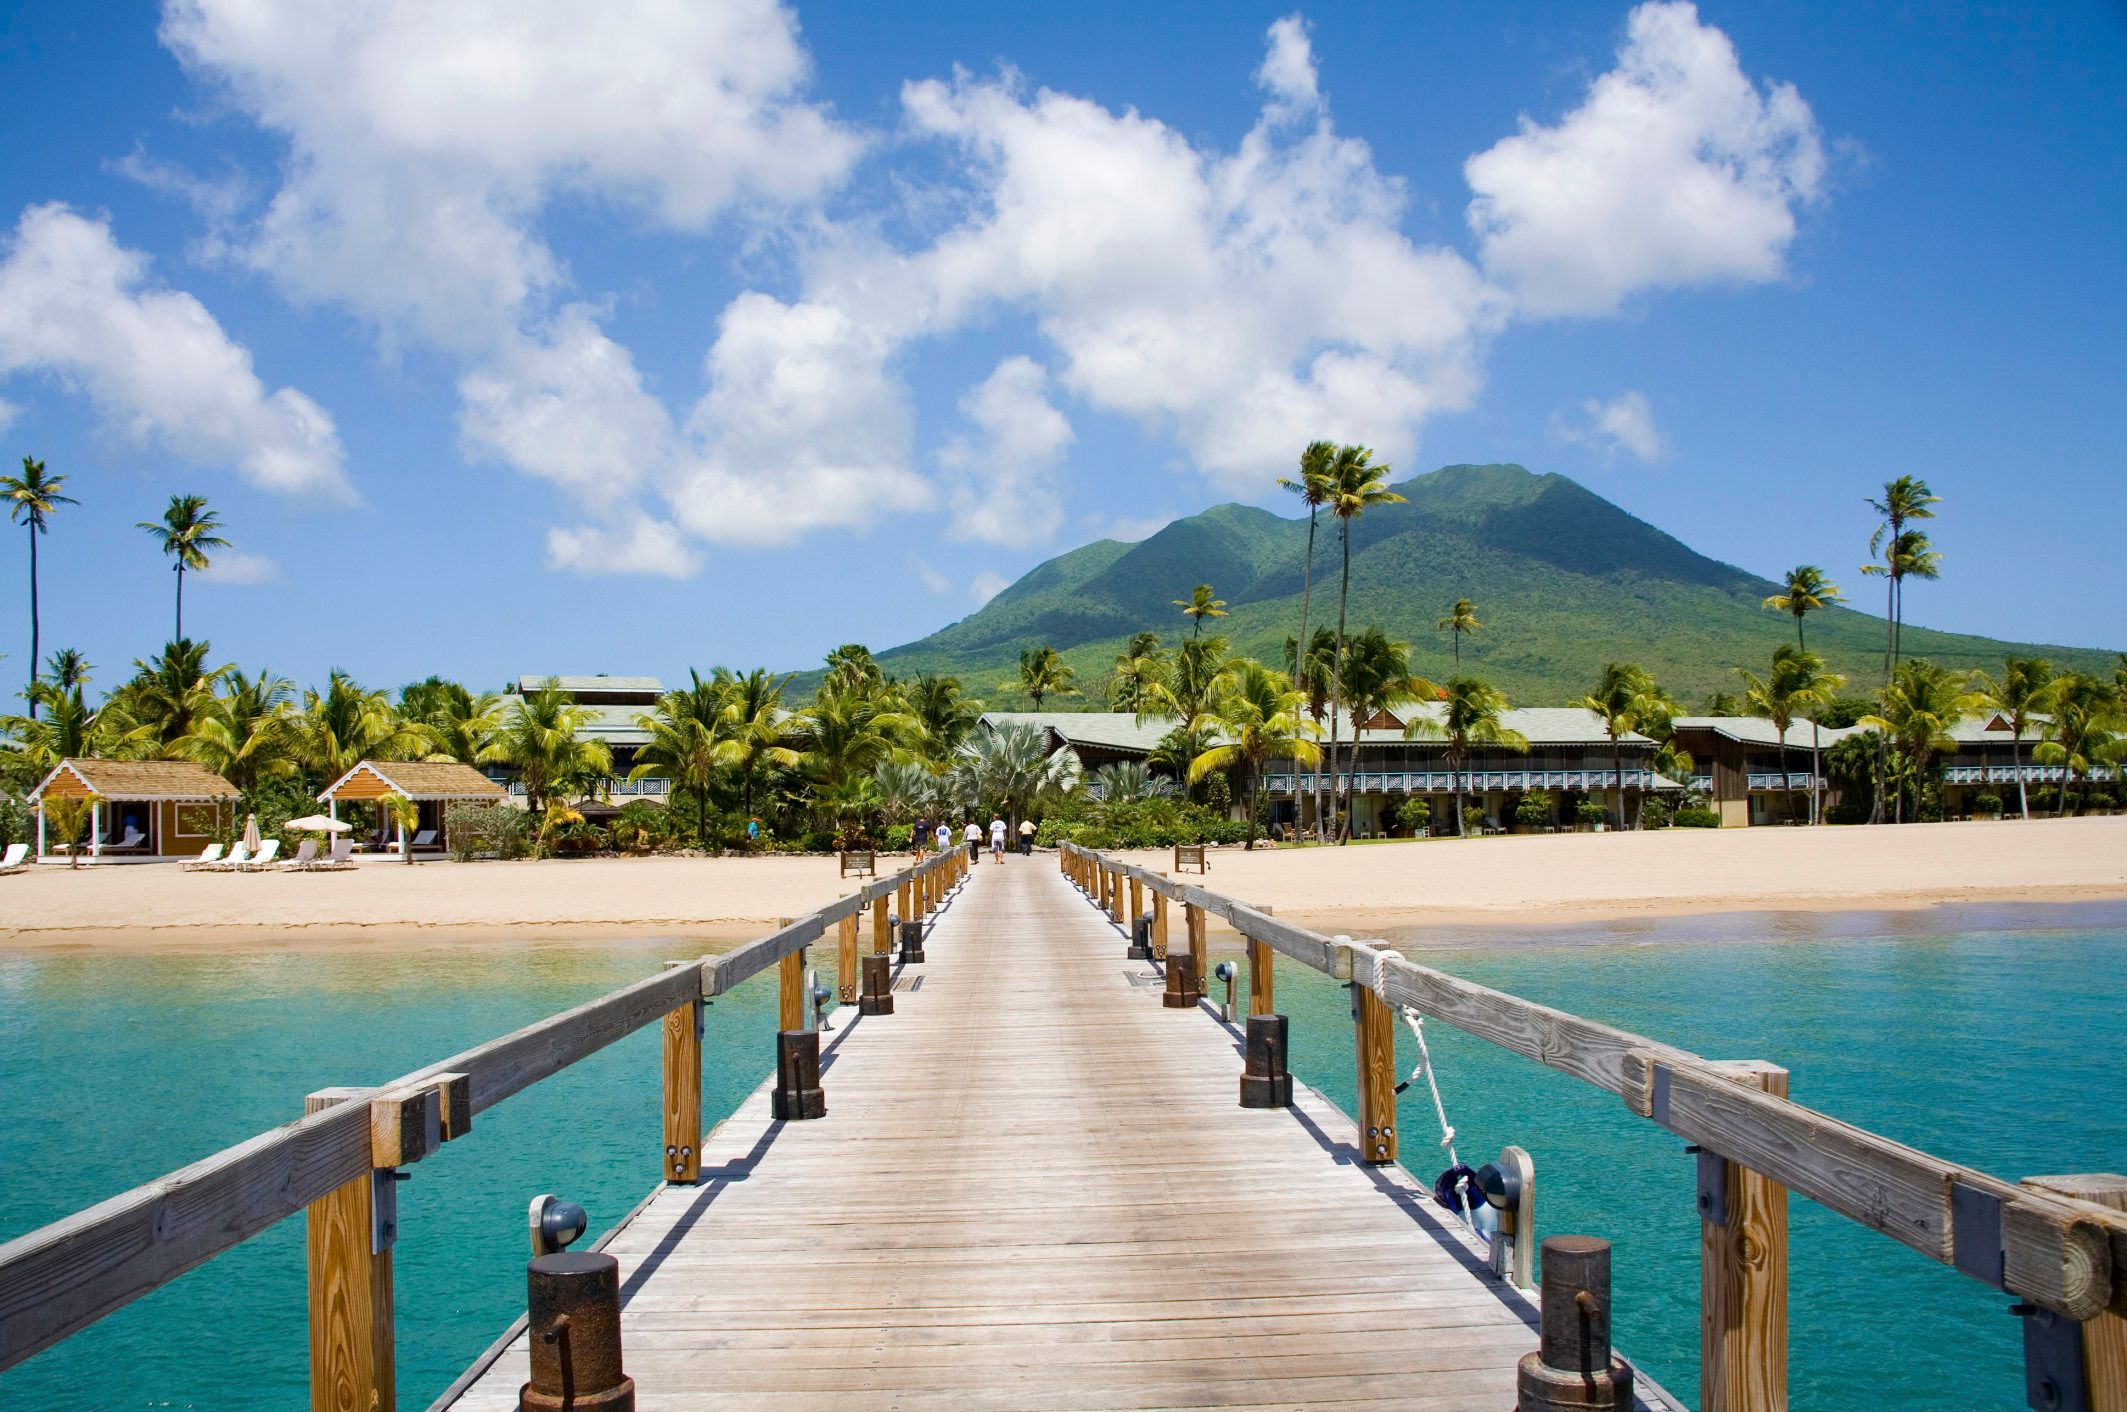 Pinney's beach with tall coconut palms, and the volcano in the distance, at Nevis. Caribbean